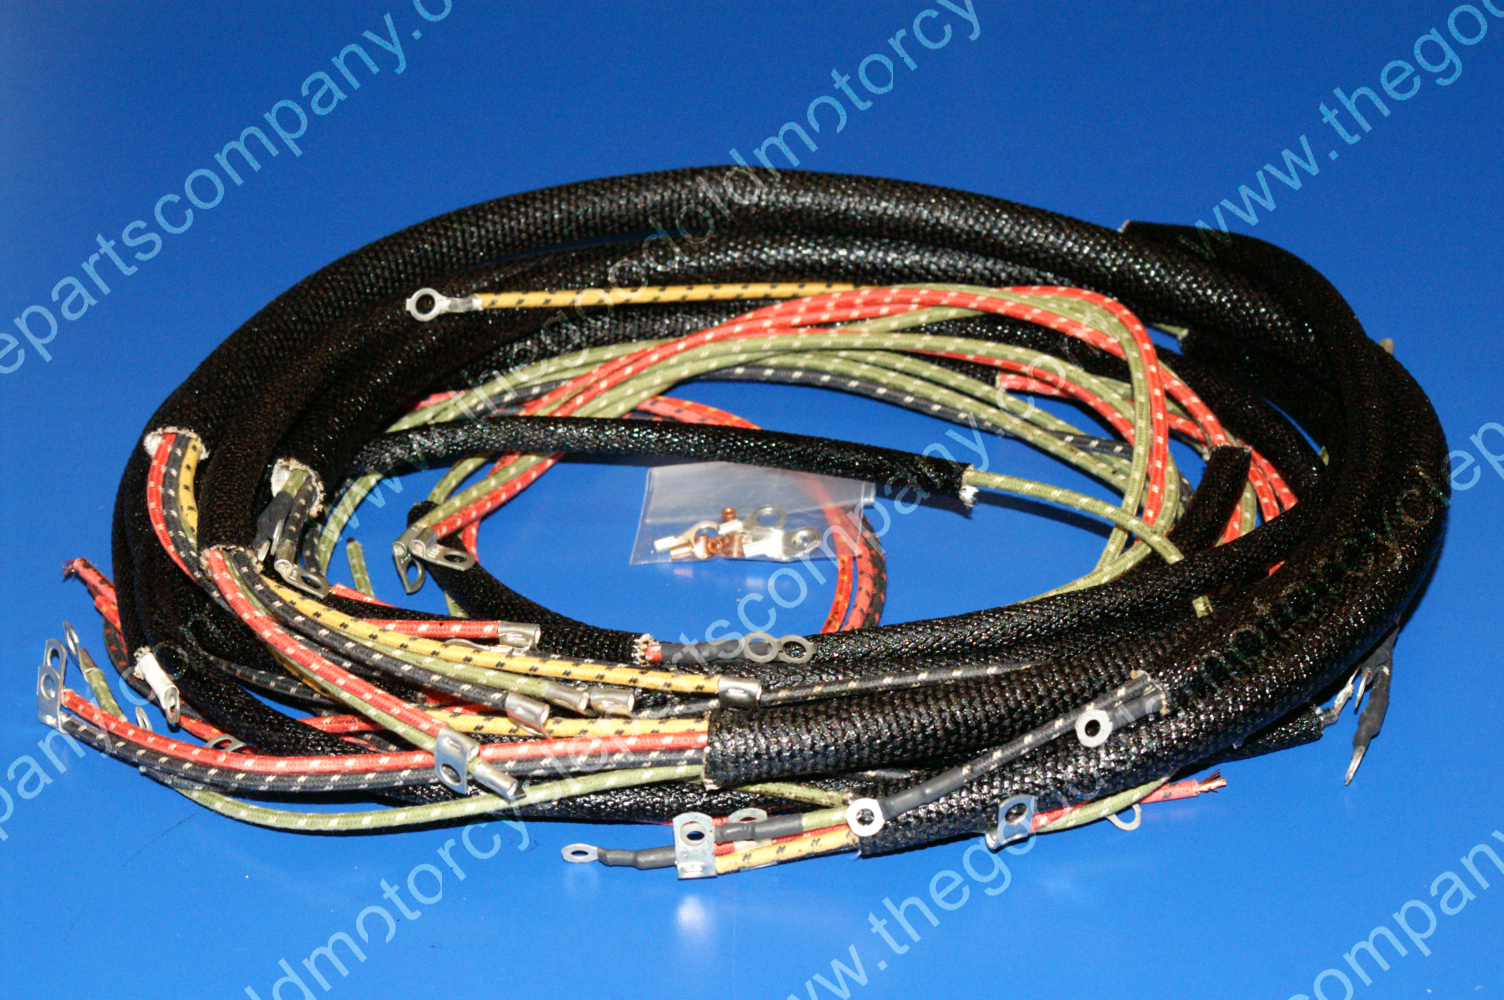 Harley Davidson 70321-58, 1958-64 FL, FLH Wiring Harness on